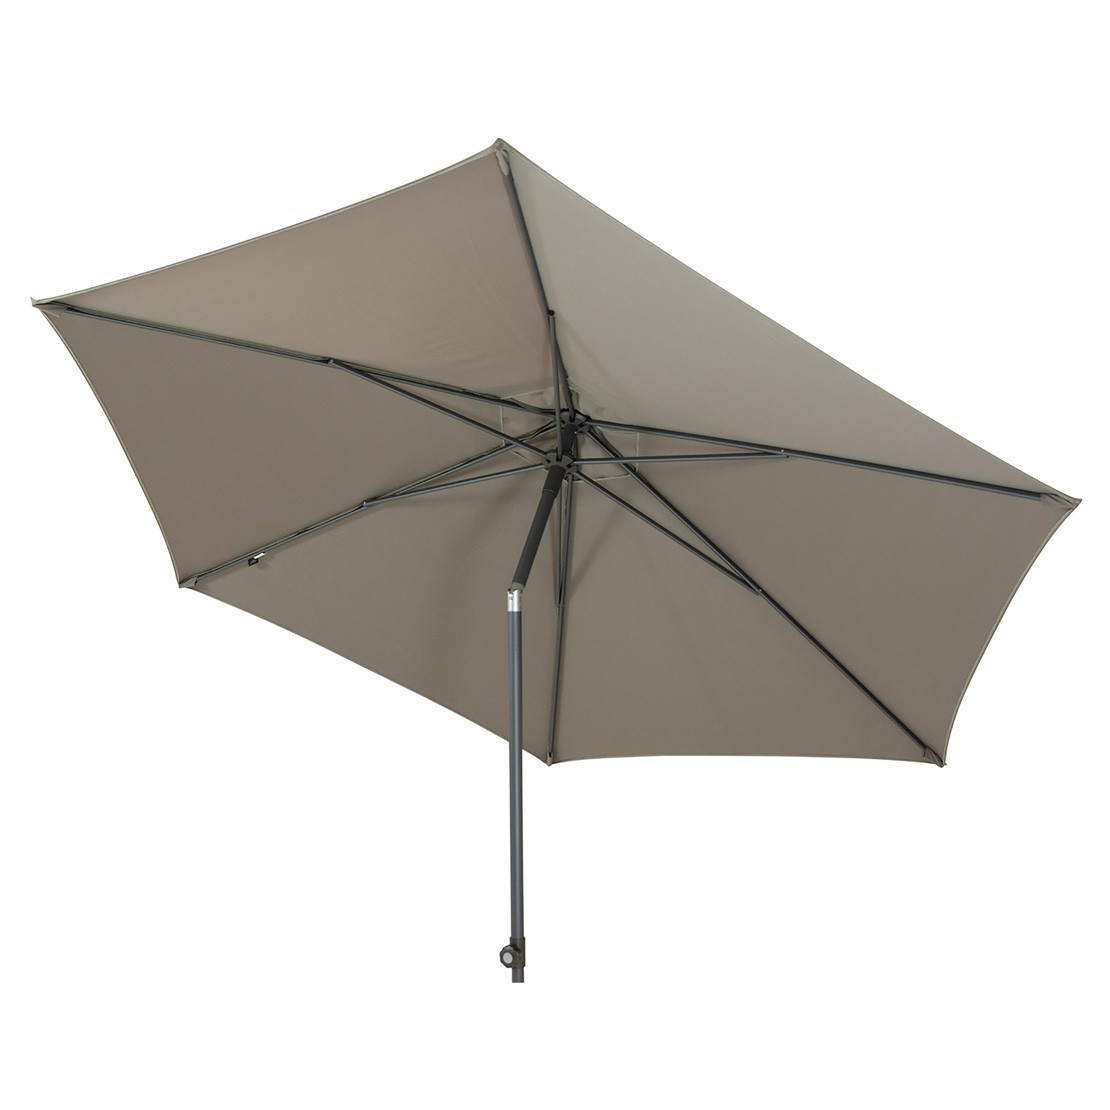 Oasis 250 cm rond Taupe